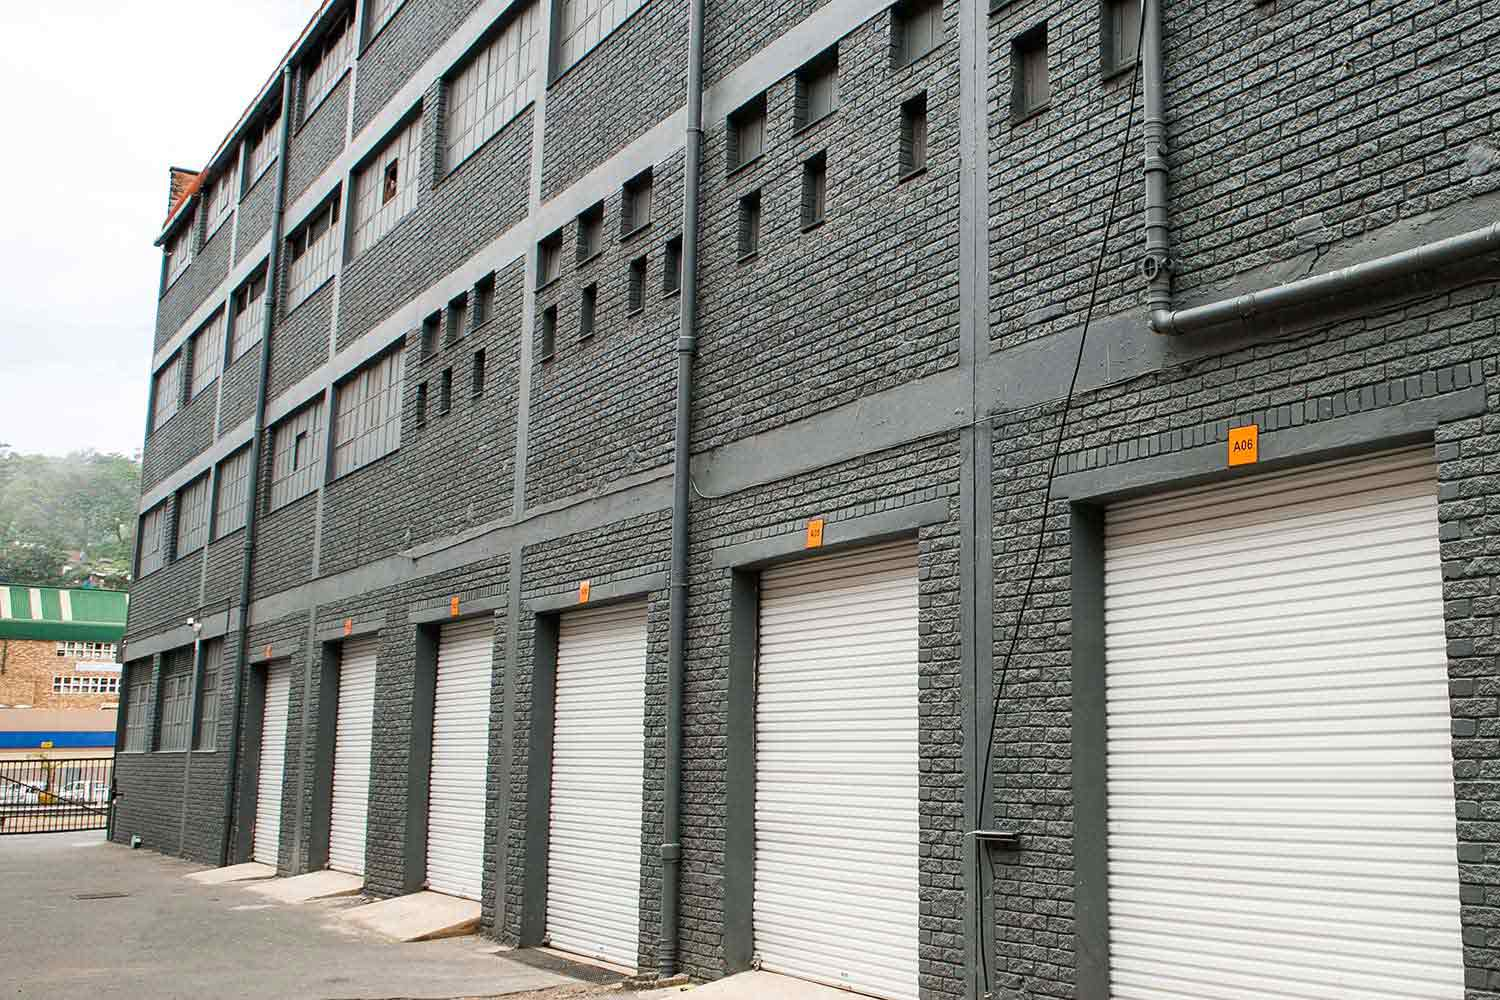 Outdoor self storage units at XtraSpace Durban North